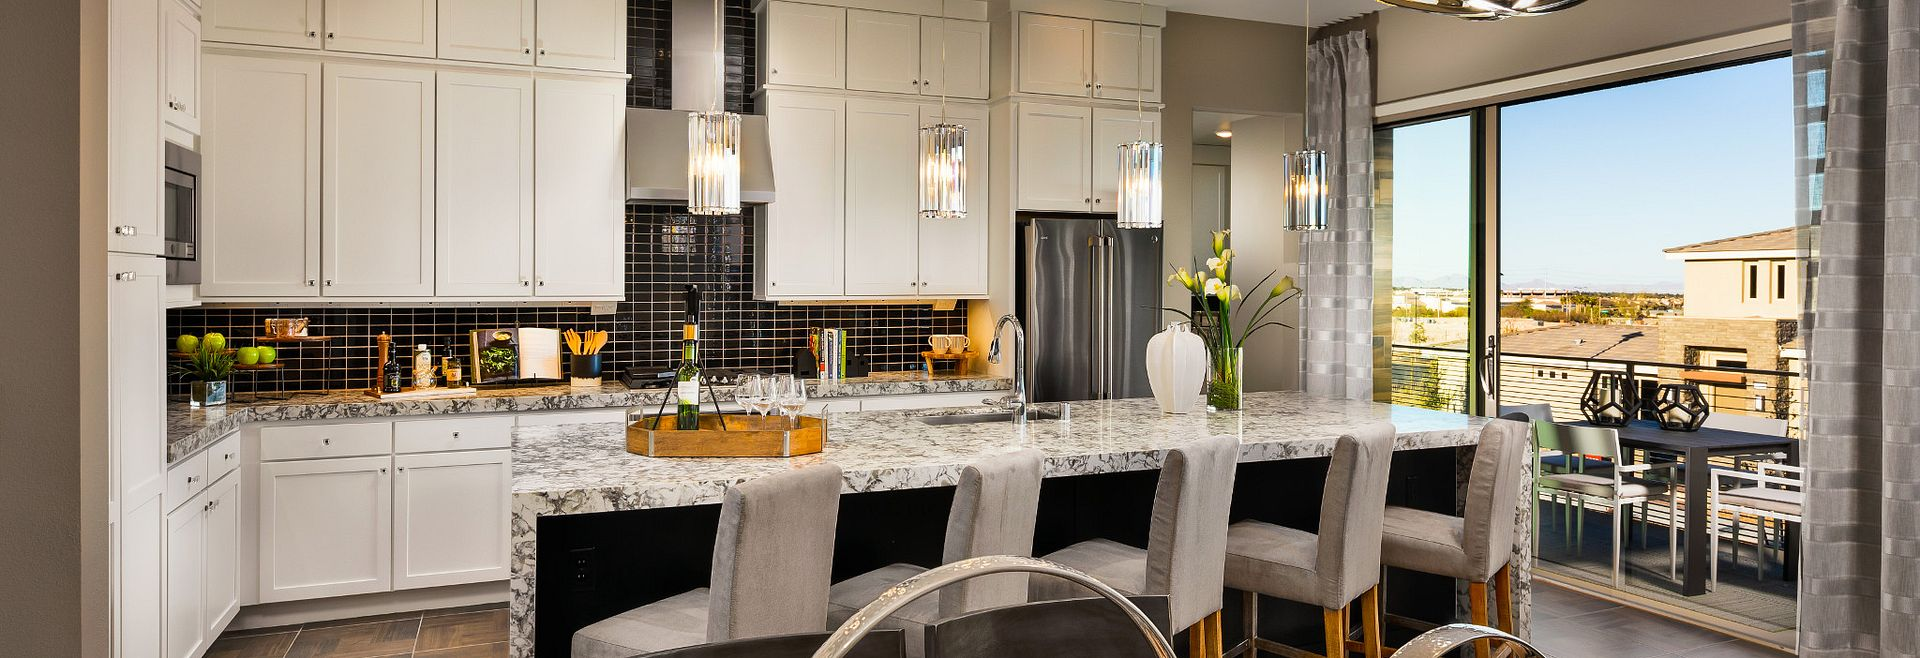 Trilogy Summerlin Viewpoint Kitchen & Dining